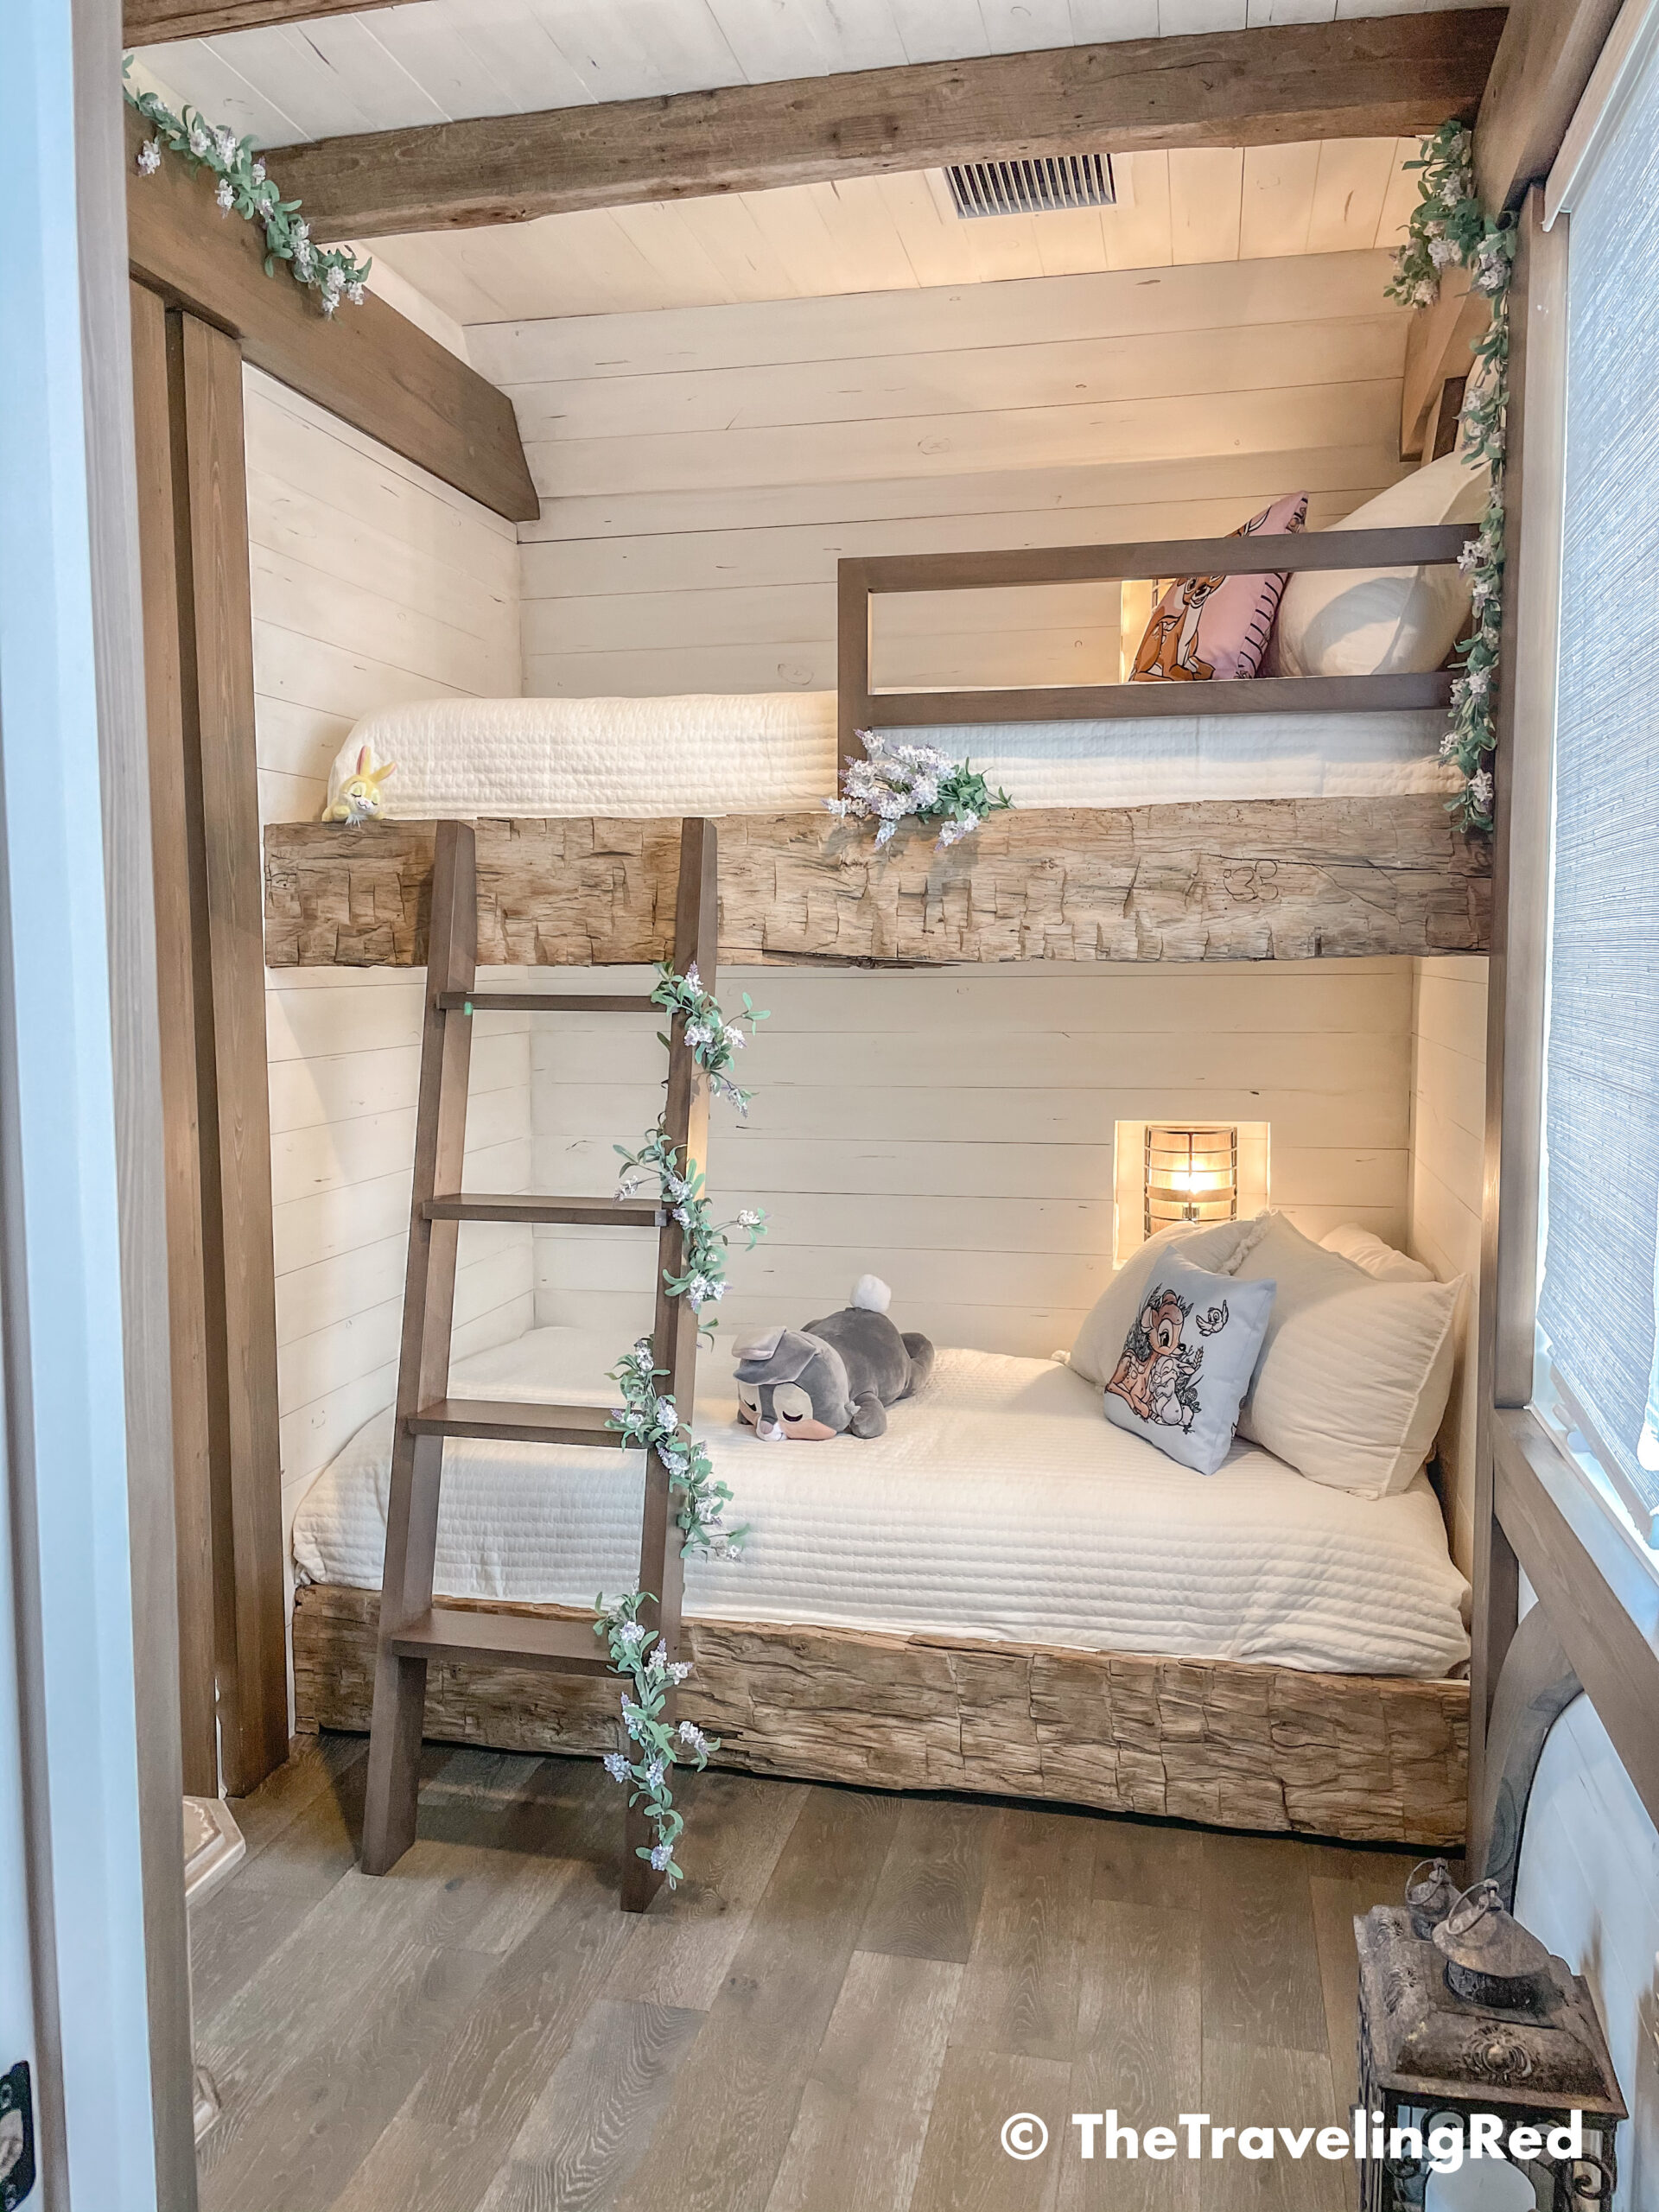 Bambi bunk bed room inside our Disney Golden Oak home. Inspiration for a tiny kids bedroom full of rustic charm and character. Reclaimed wood beams, shiplap, flowers and lanterns fill the room, along with Bambi details.